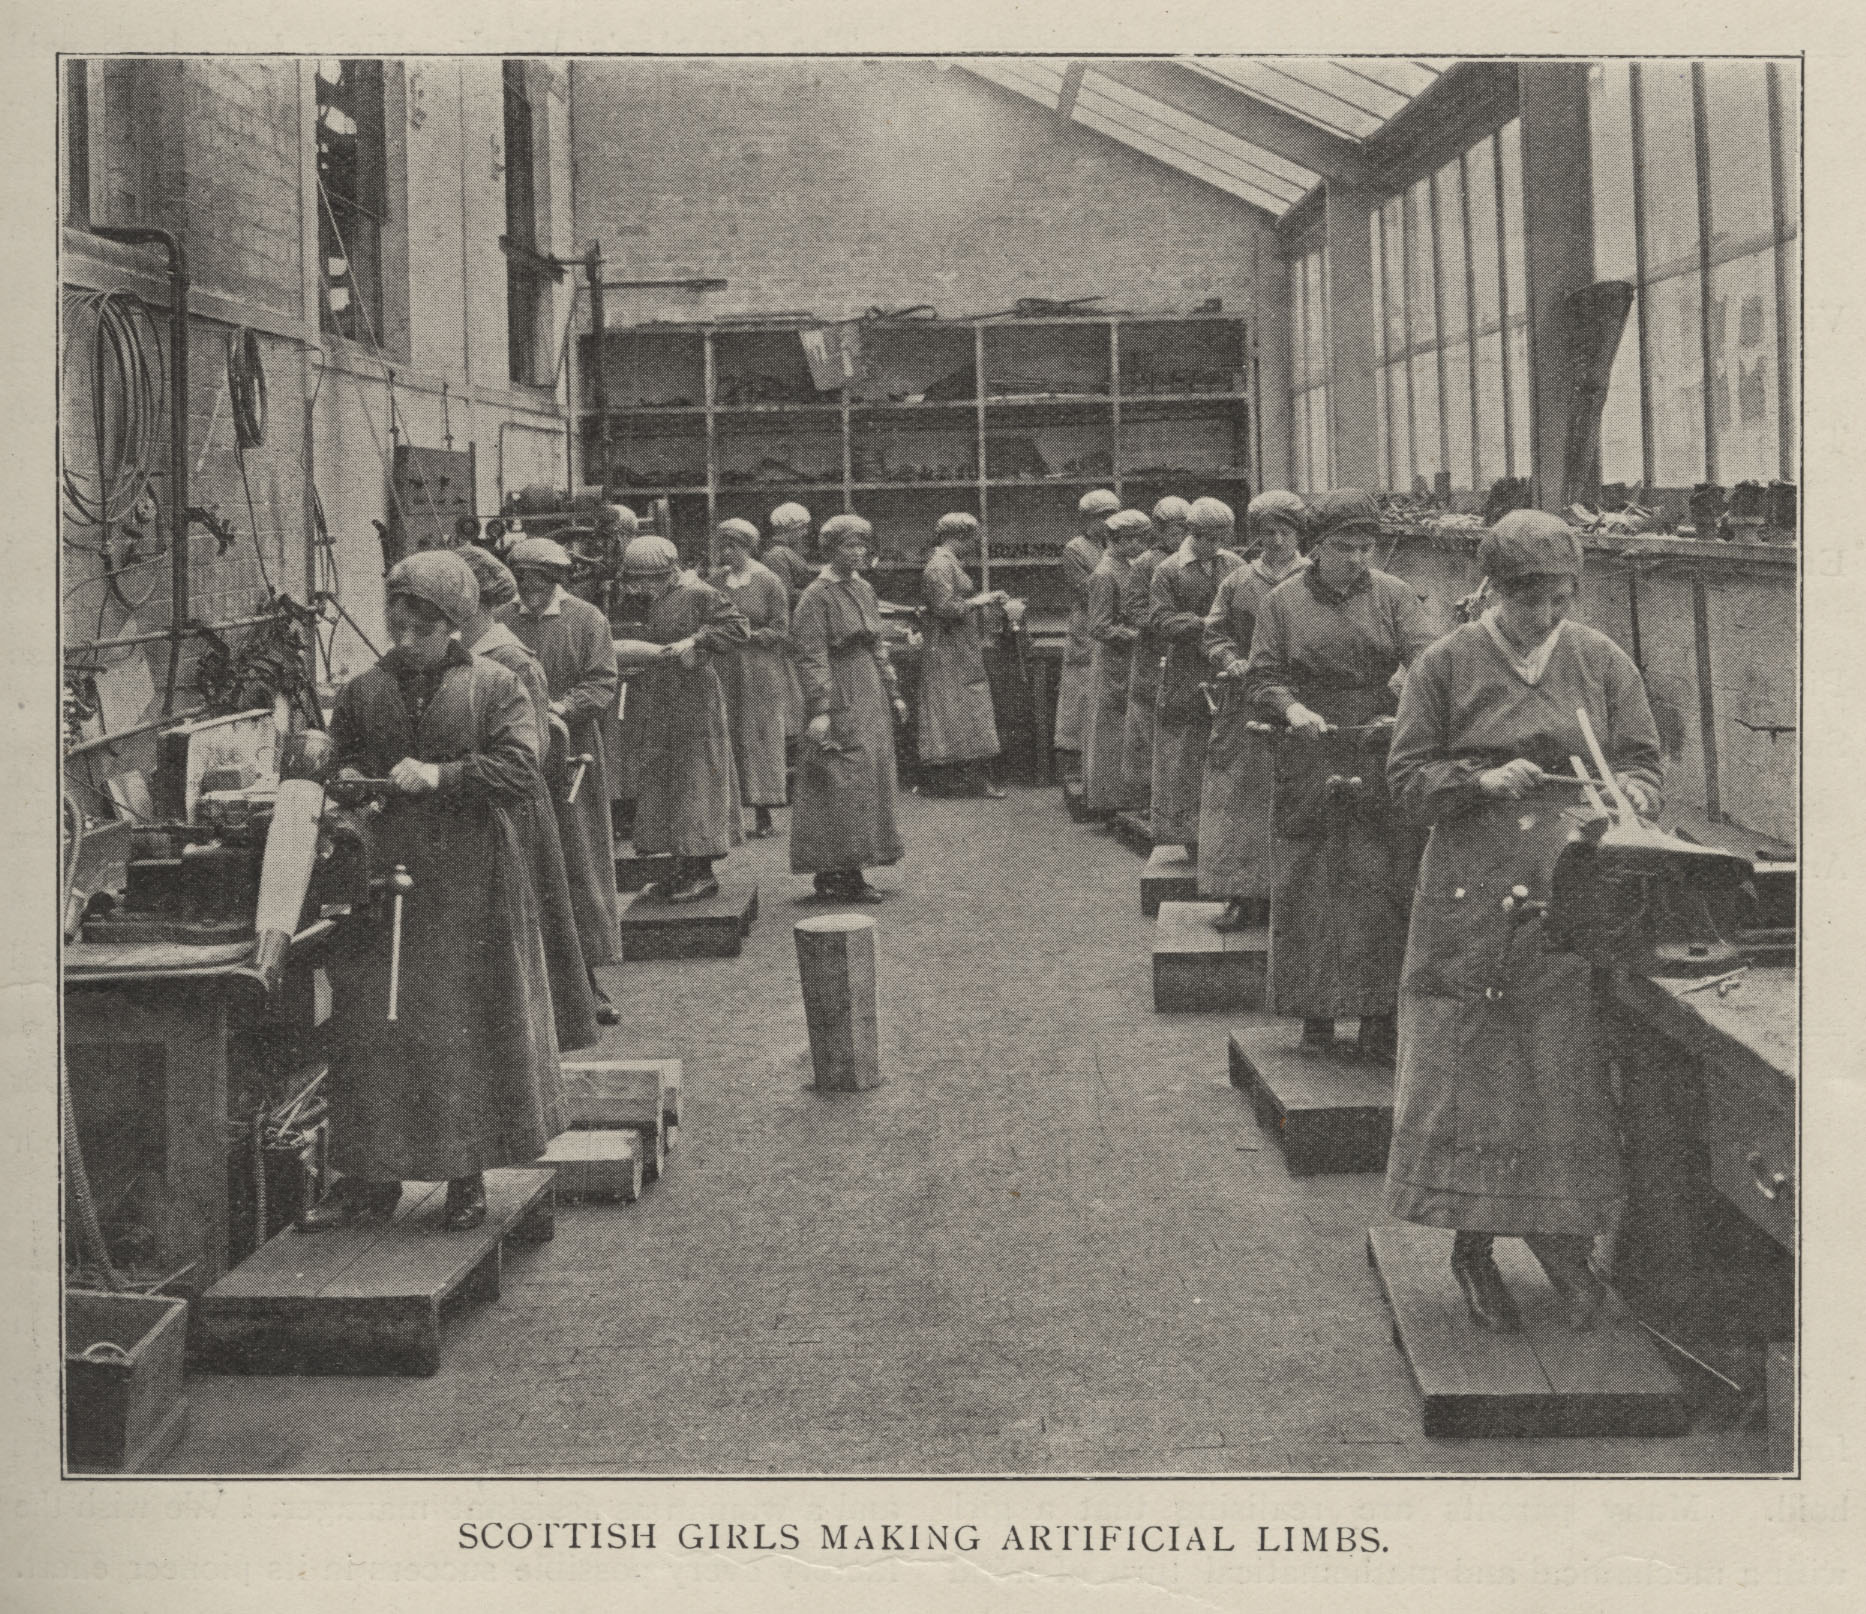 Image from The Woman Engineer Journal: Scottish girls making artificial limbs September 1920.